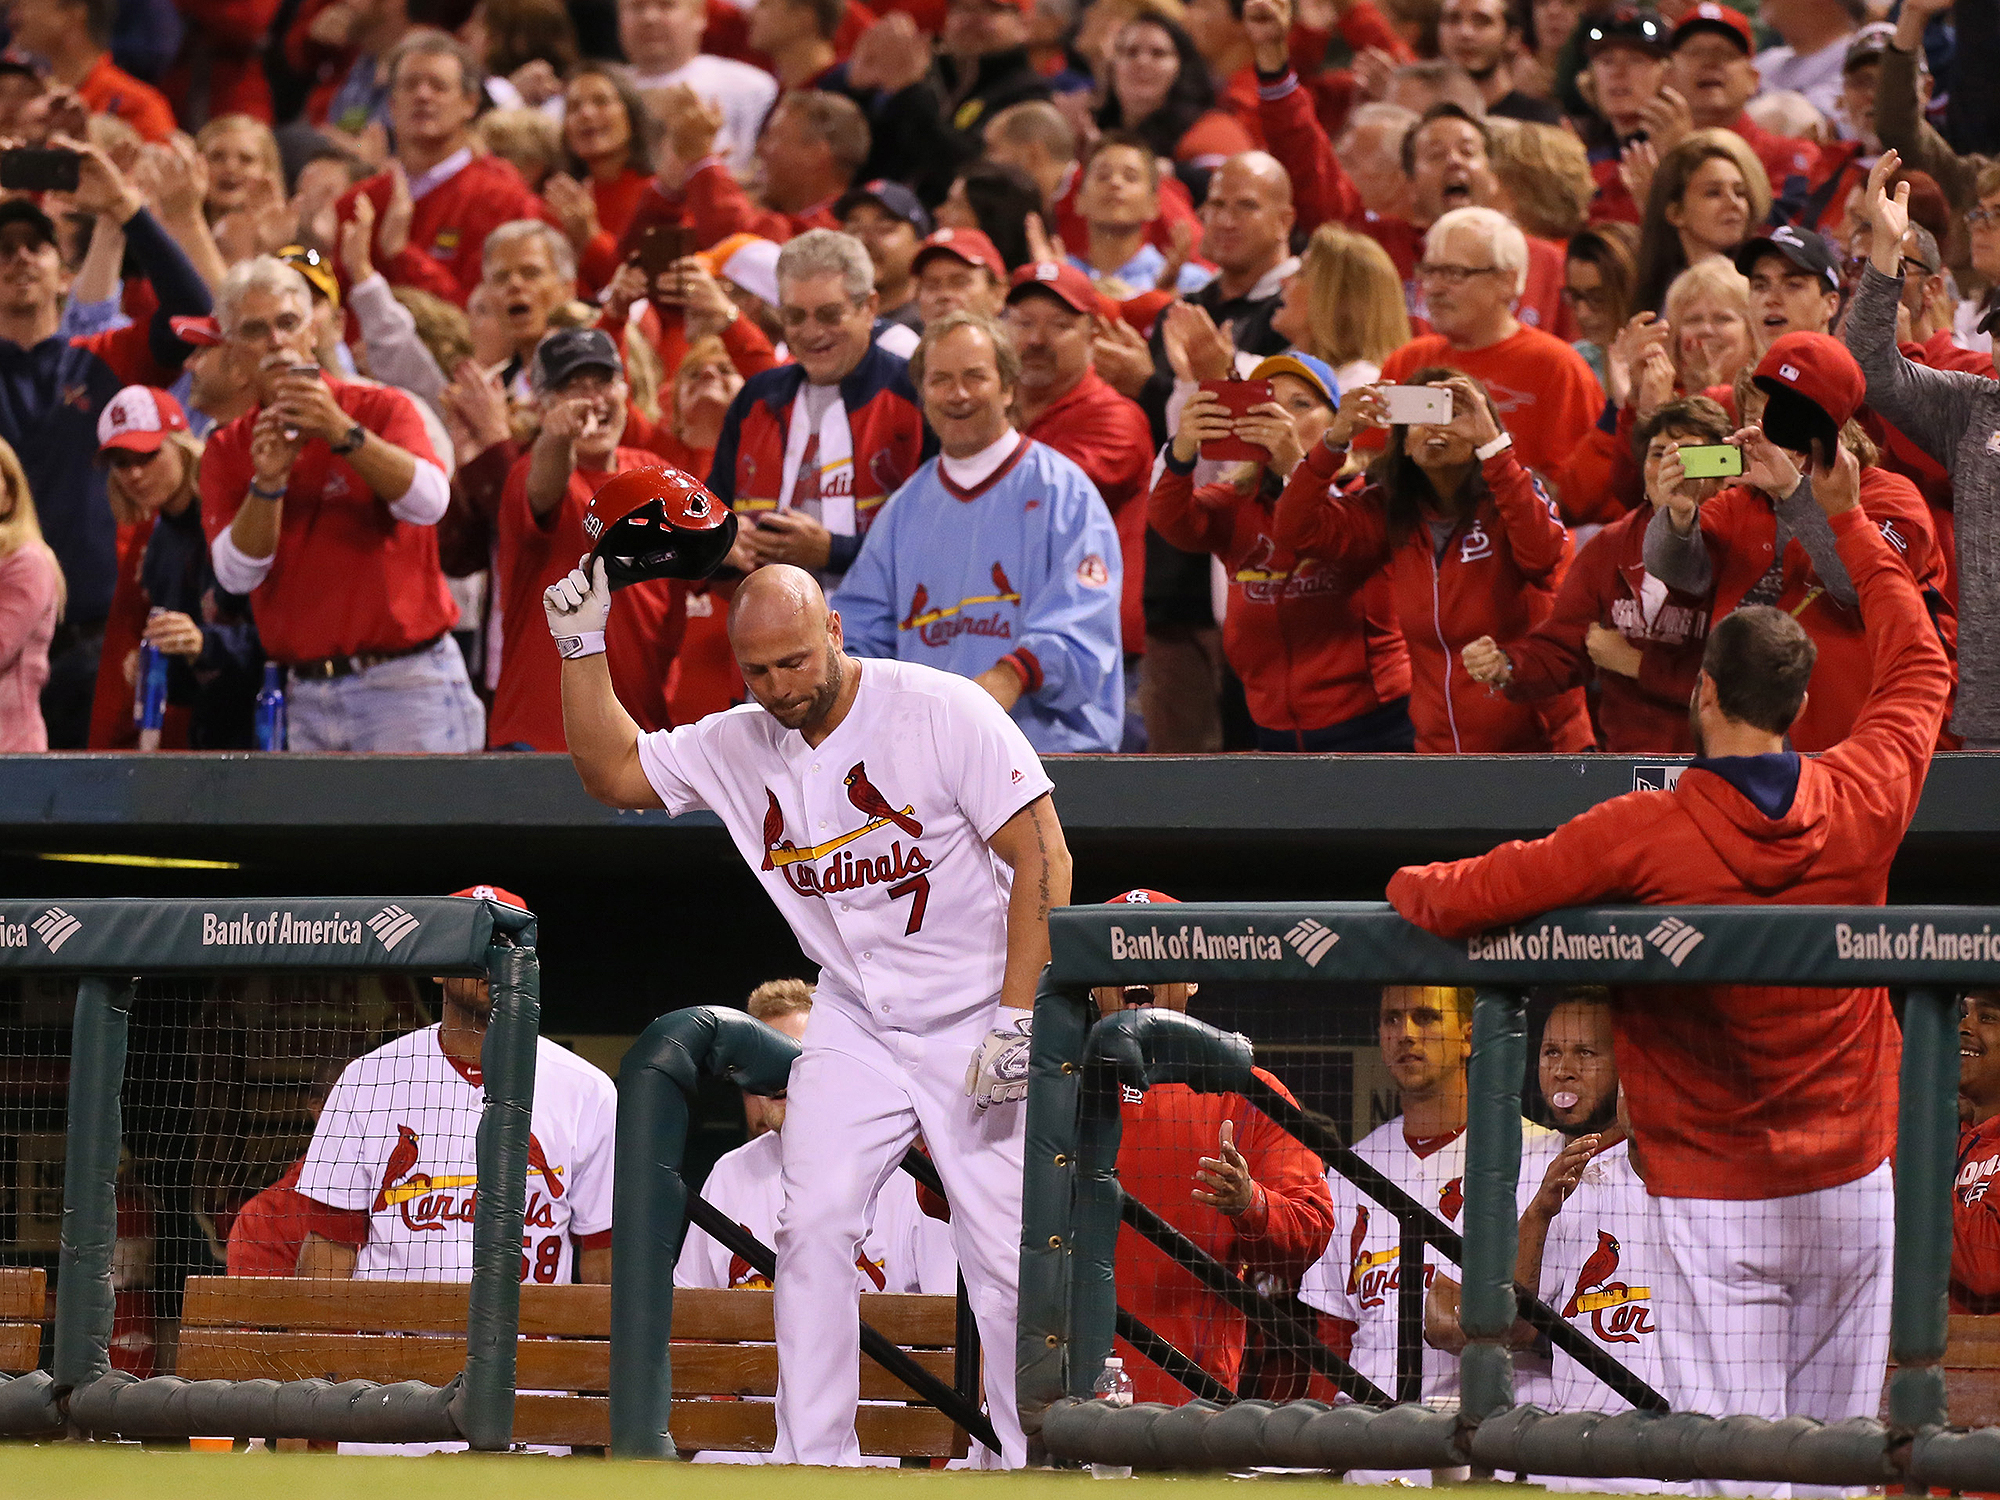 Image result for photos of Matt Holliday's Home run last evening